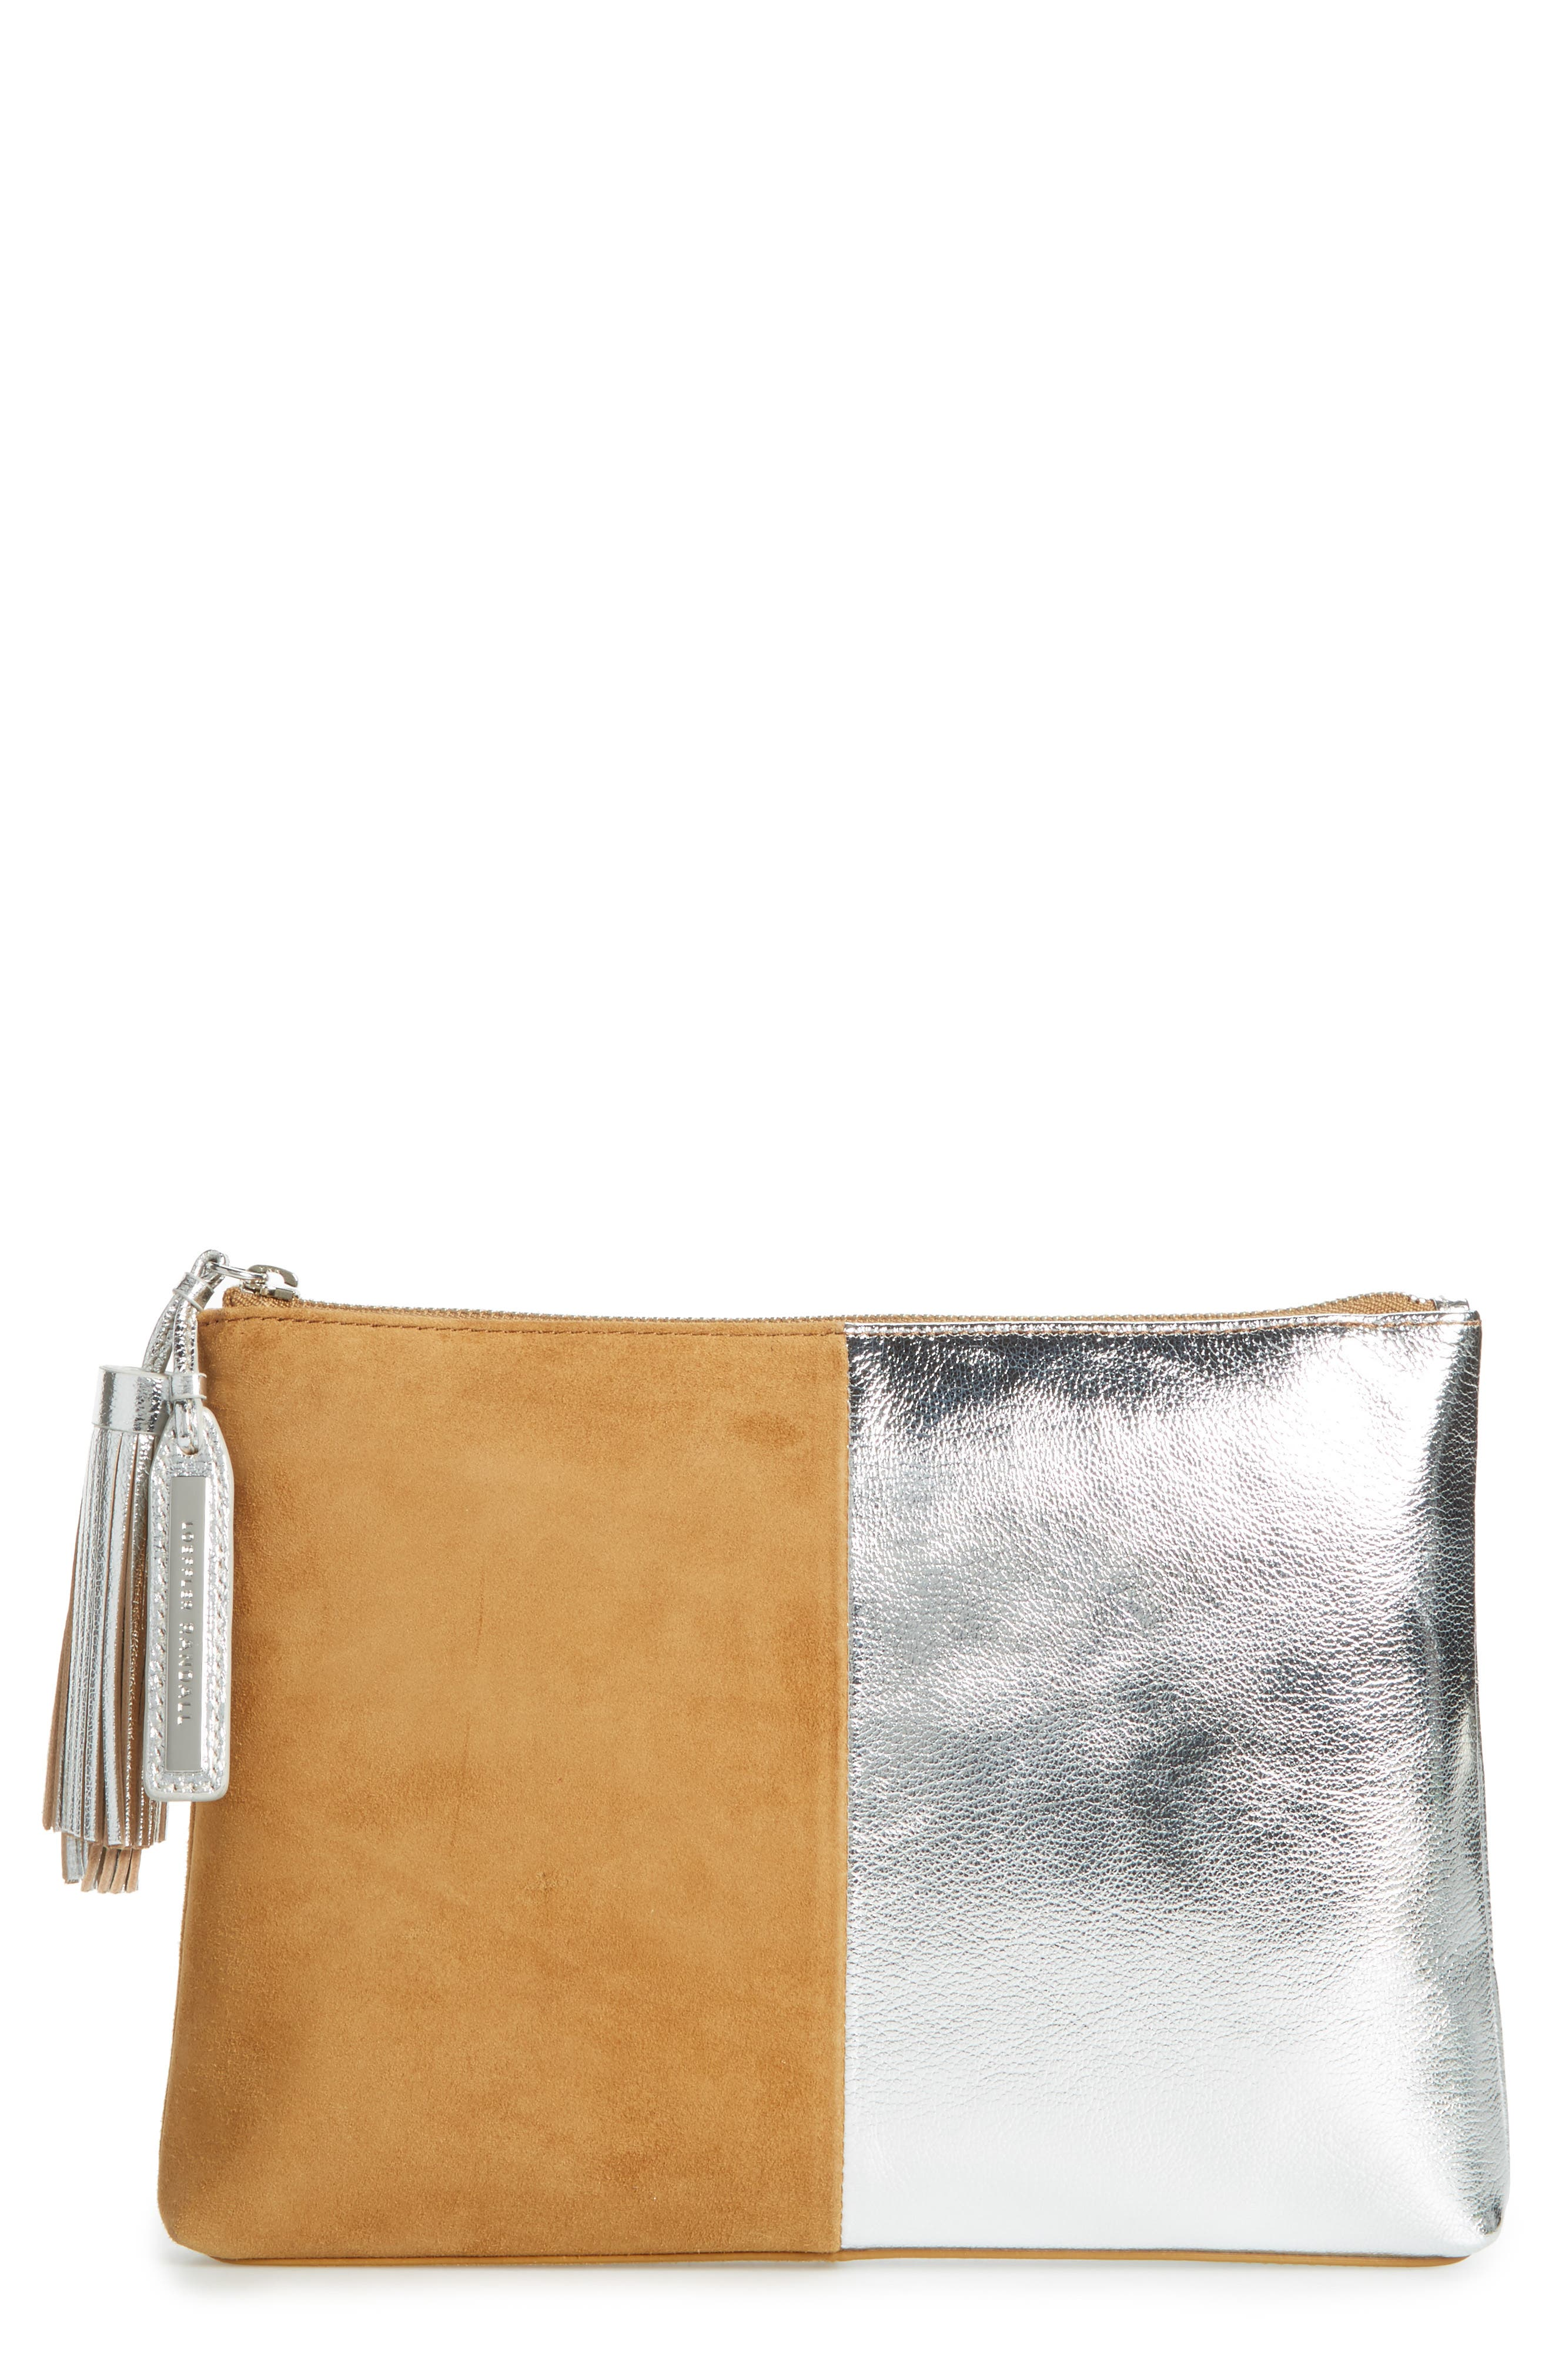 Alternate Image 1 Selected - Loeffler Randall Tassel Metallic Leather & Suede Pouch